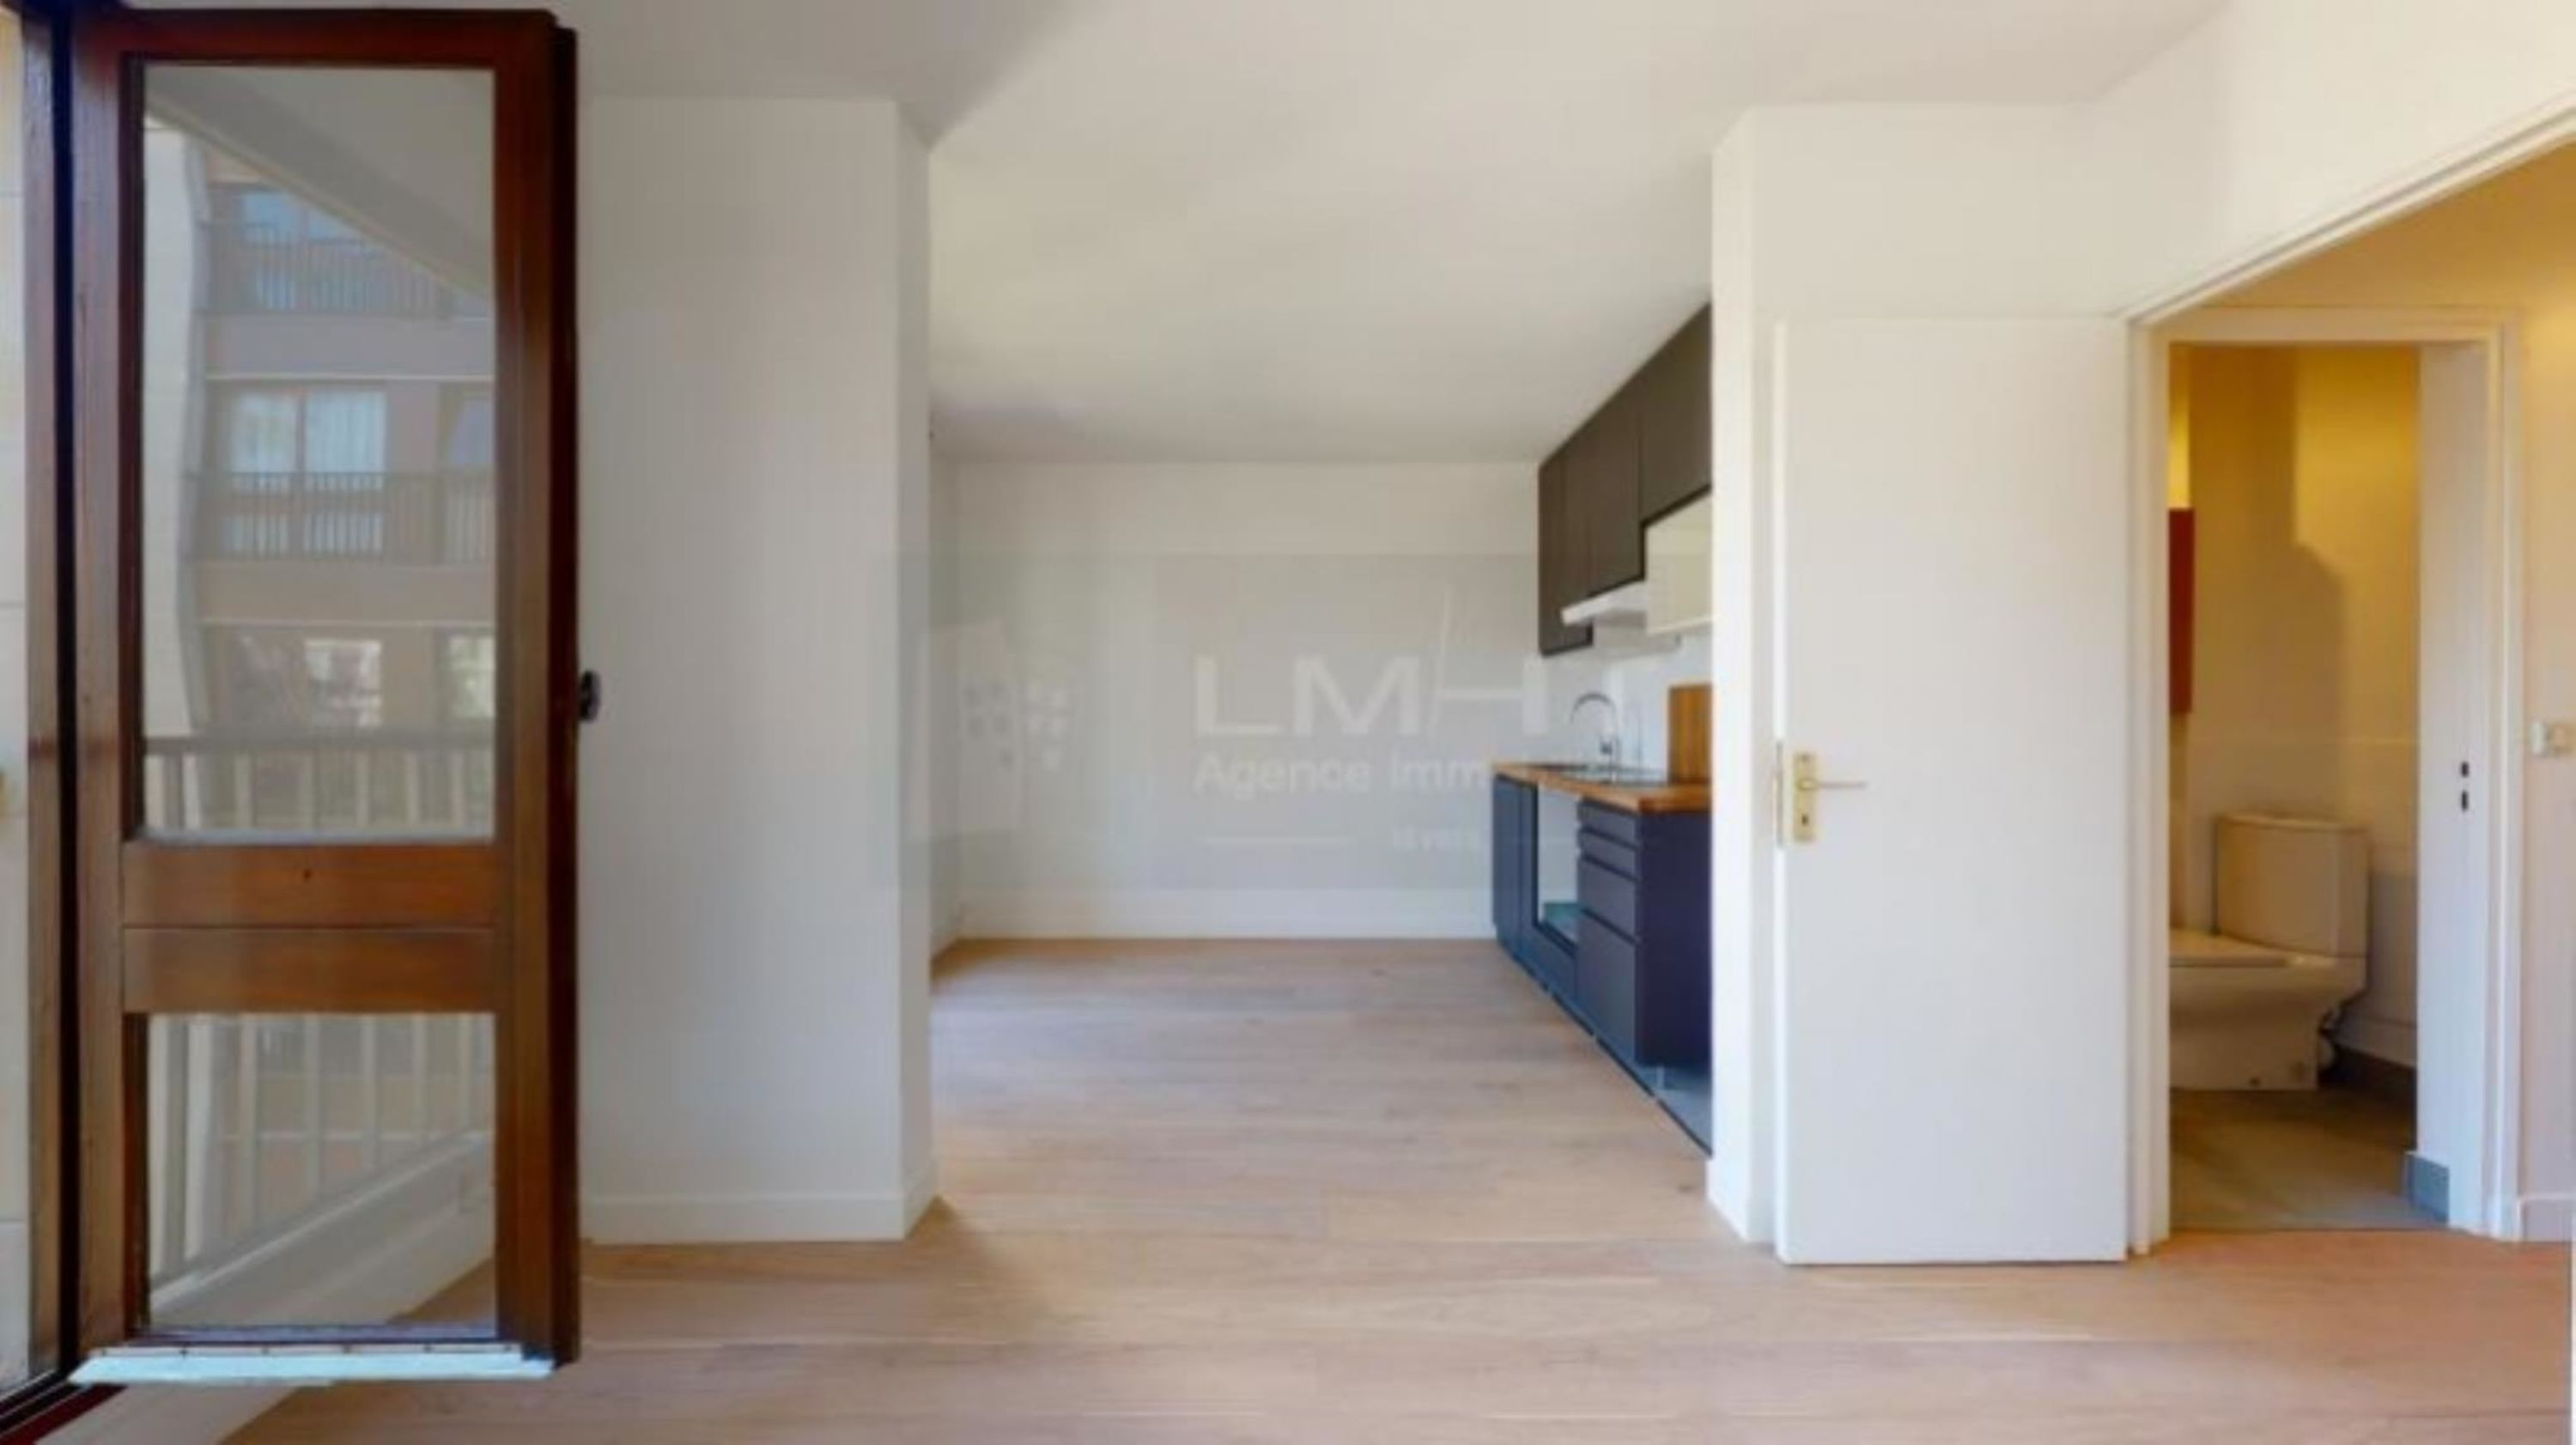 agence immobilière sevres 92 le chesnay 78 achat vente location appartement maison immobilier LMHT ANF GWLNWMYN